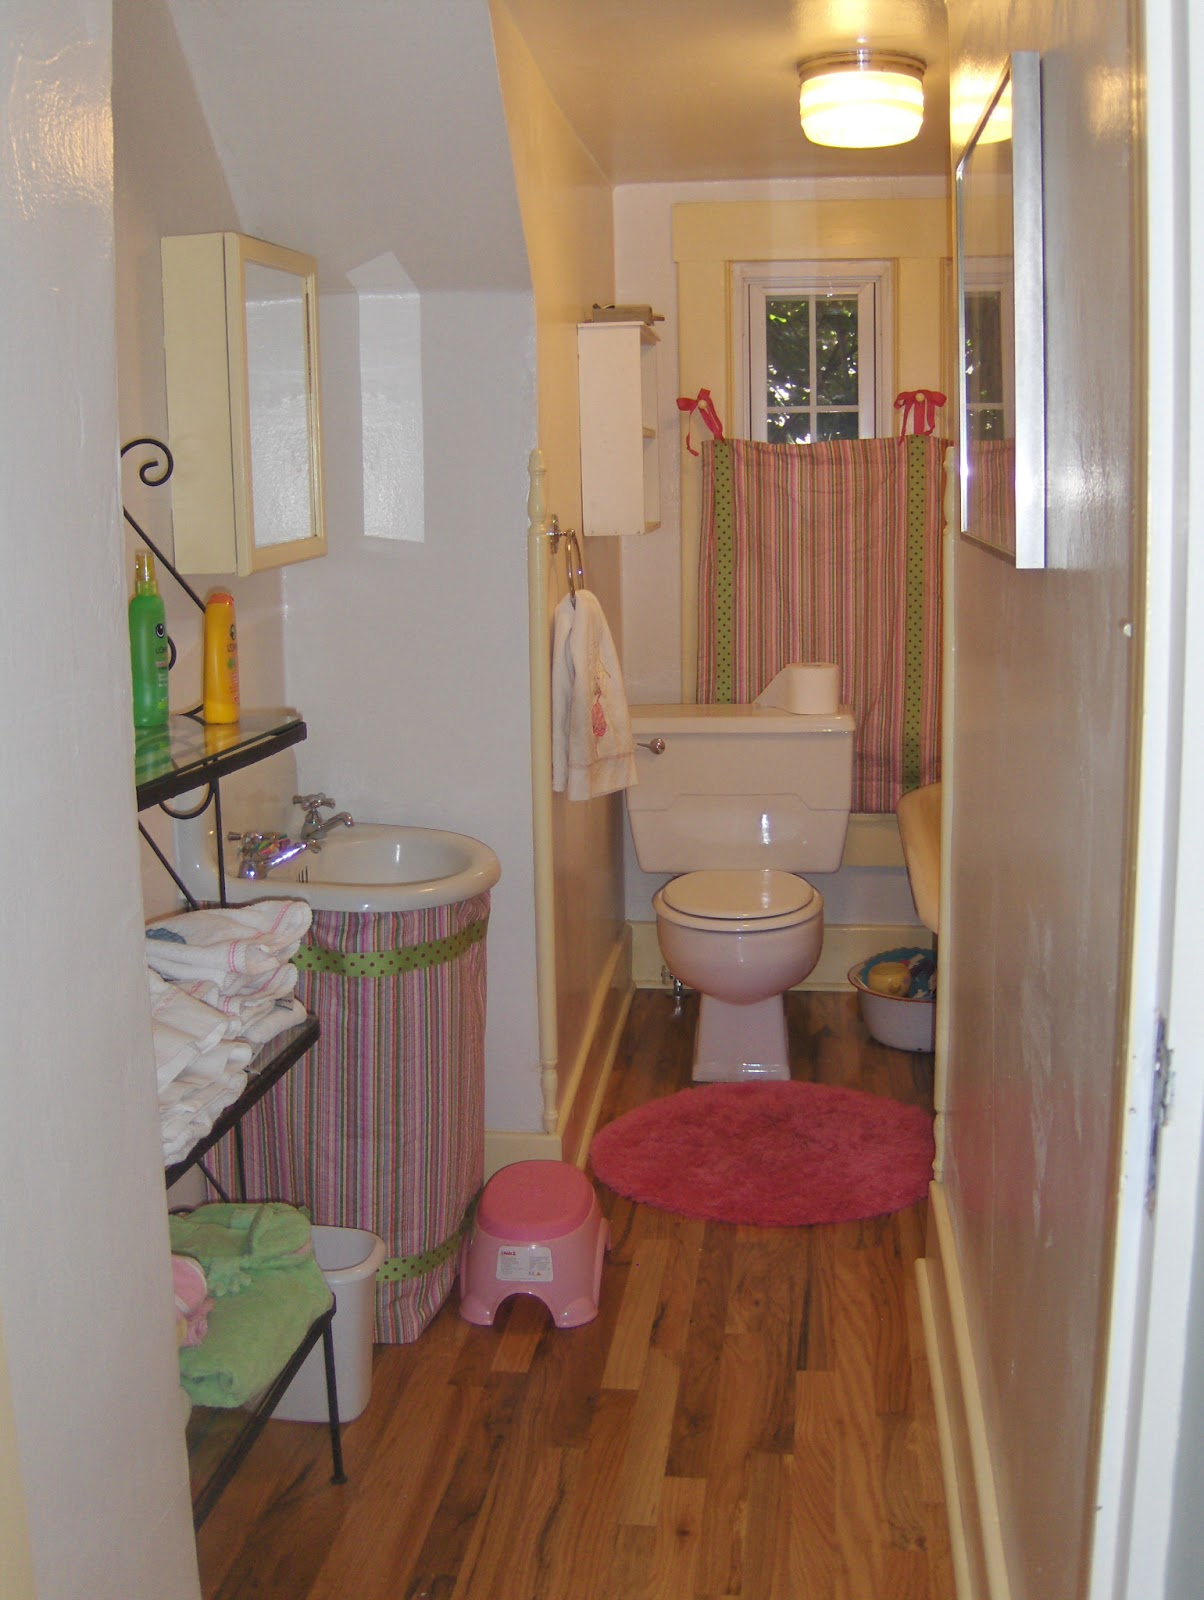 A marmie life very small bathroom remodel for Small bathroom renovations pictures